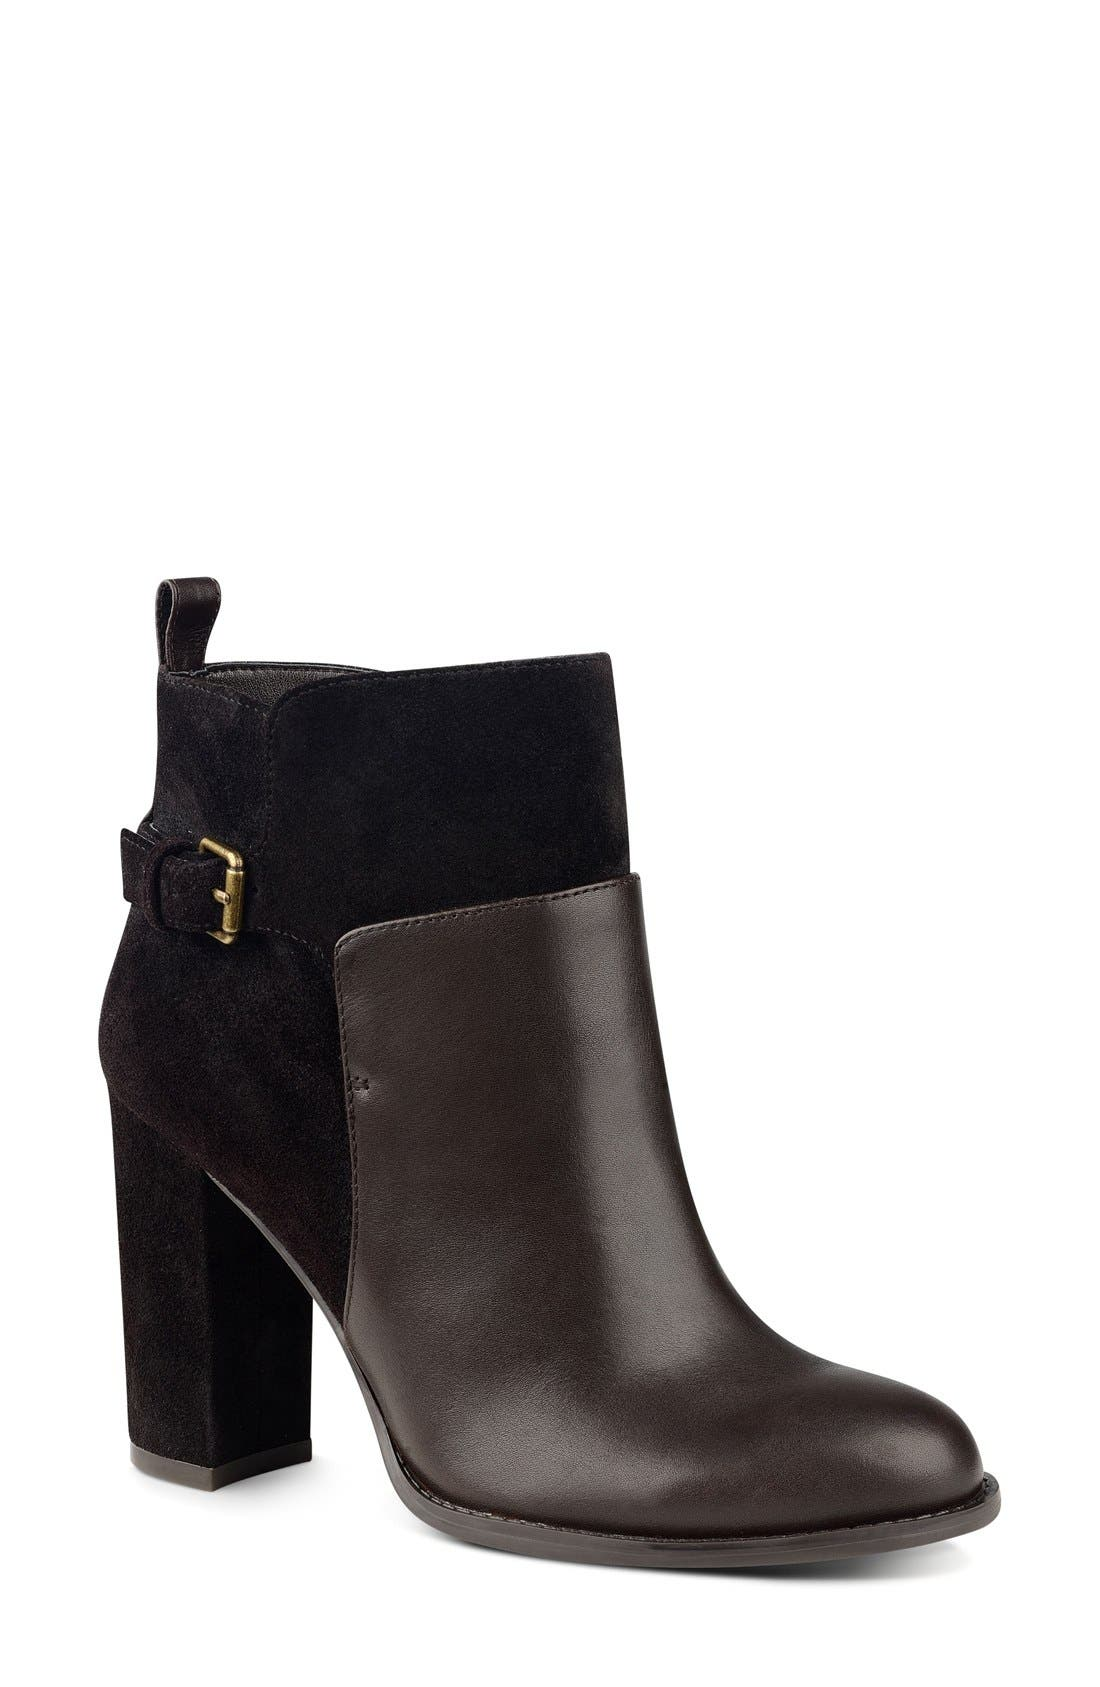 Main Image - Nine West 'Quinah' Bootie (Women)